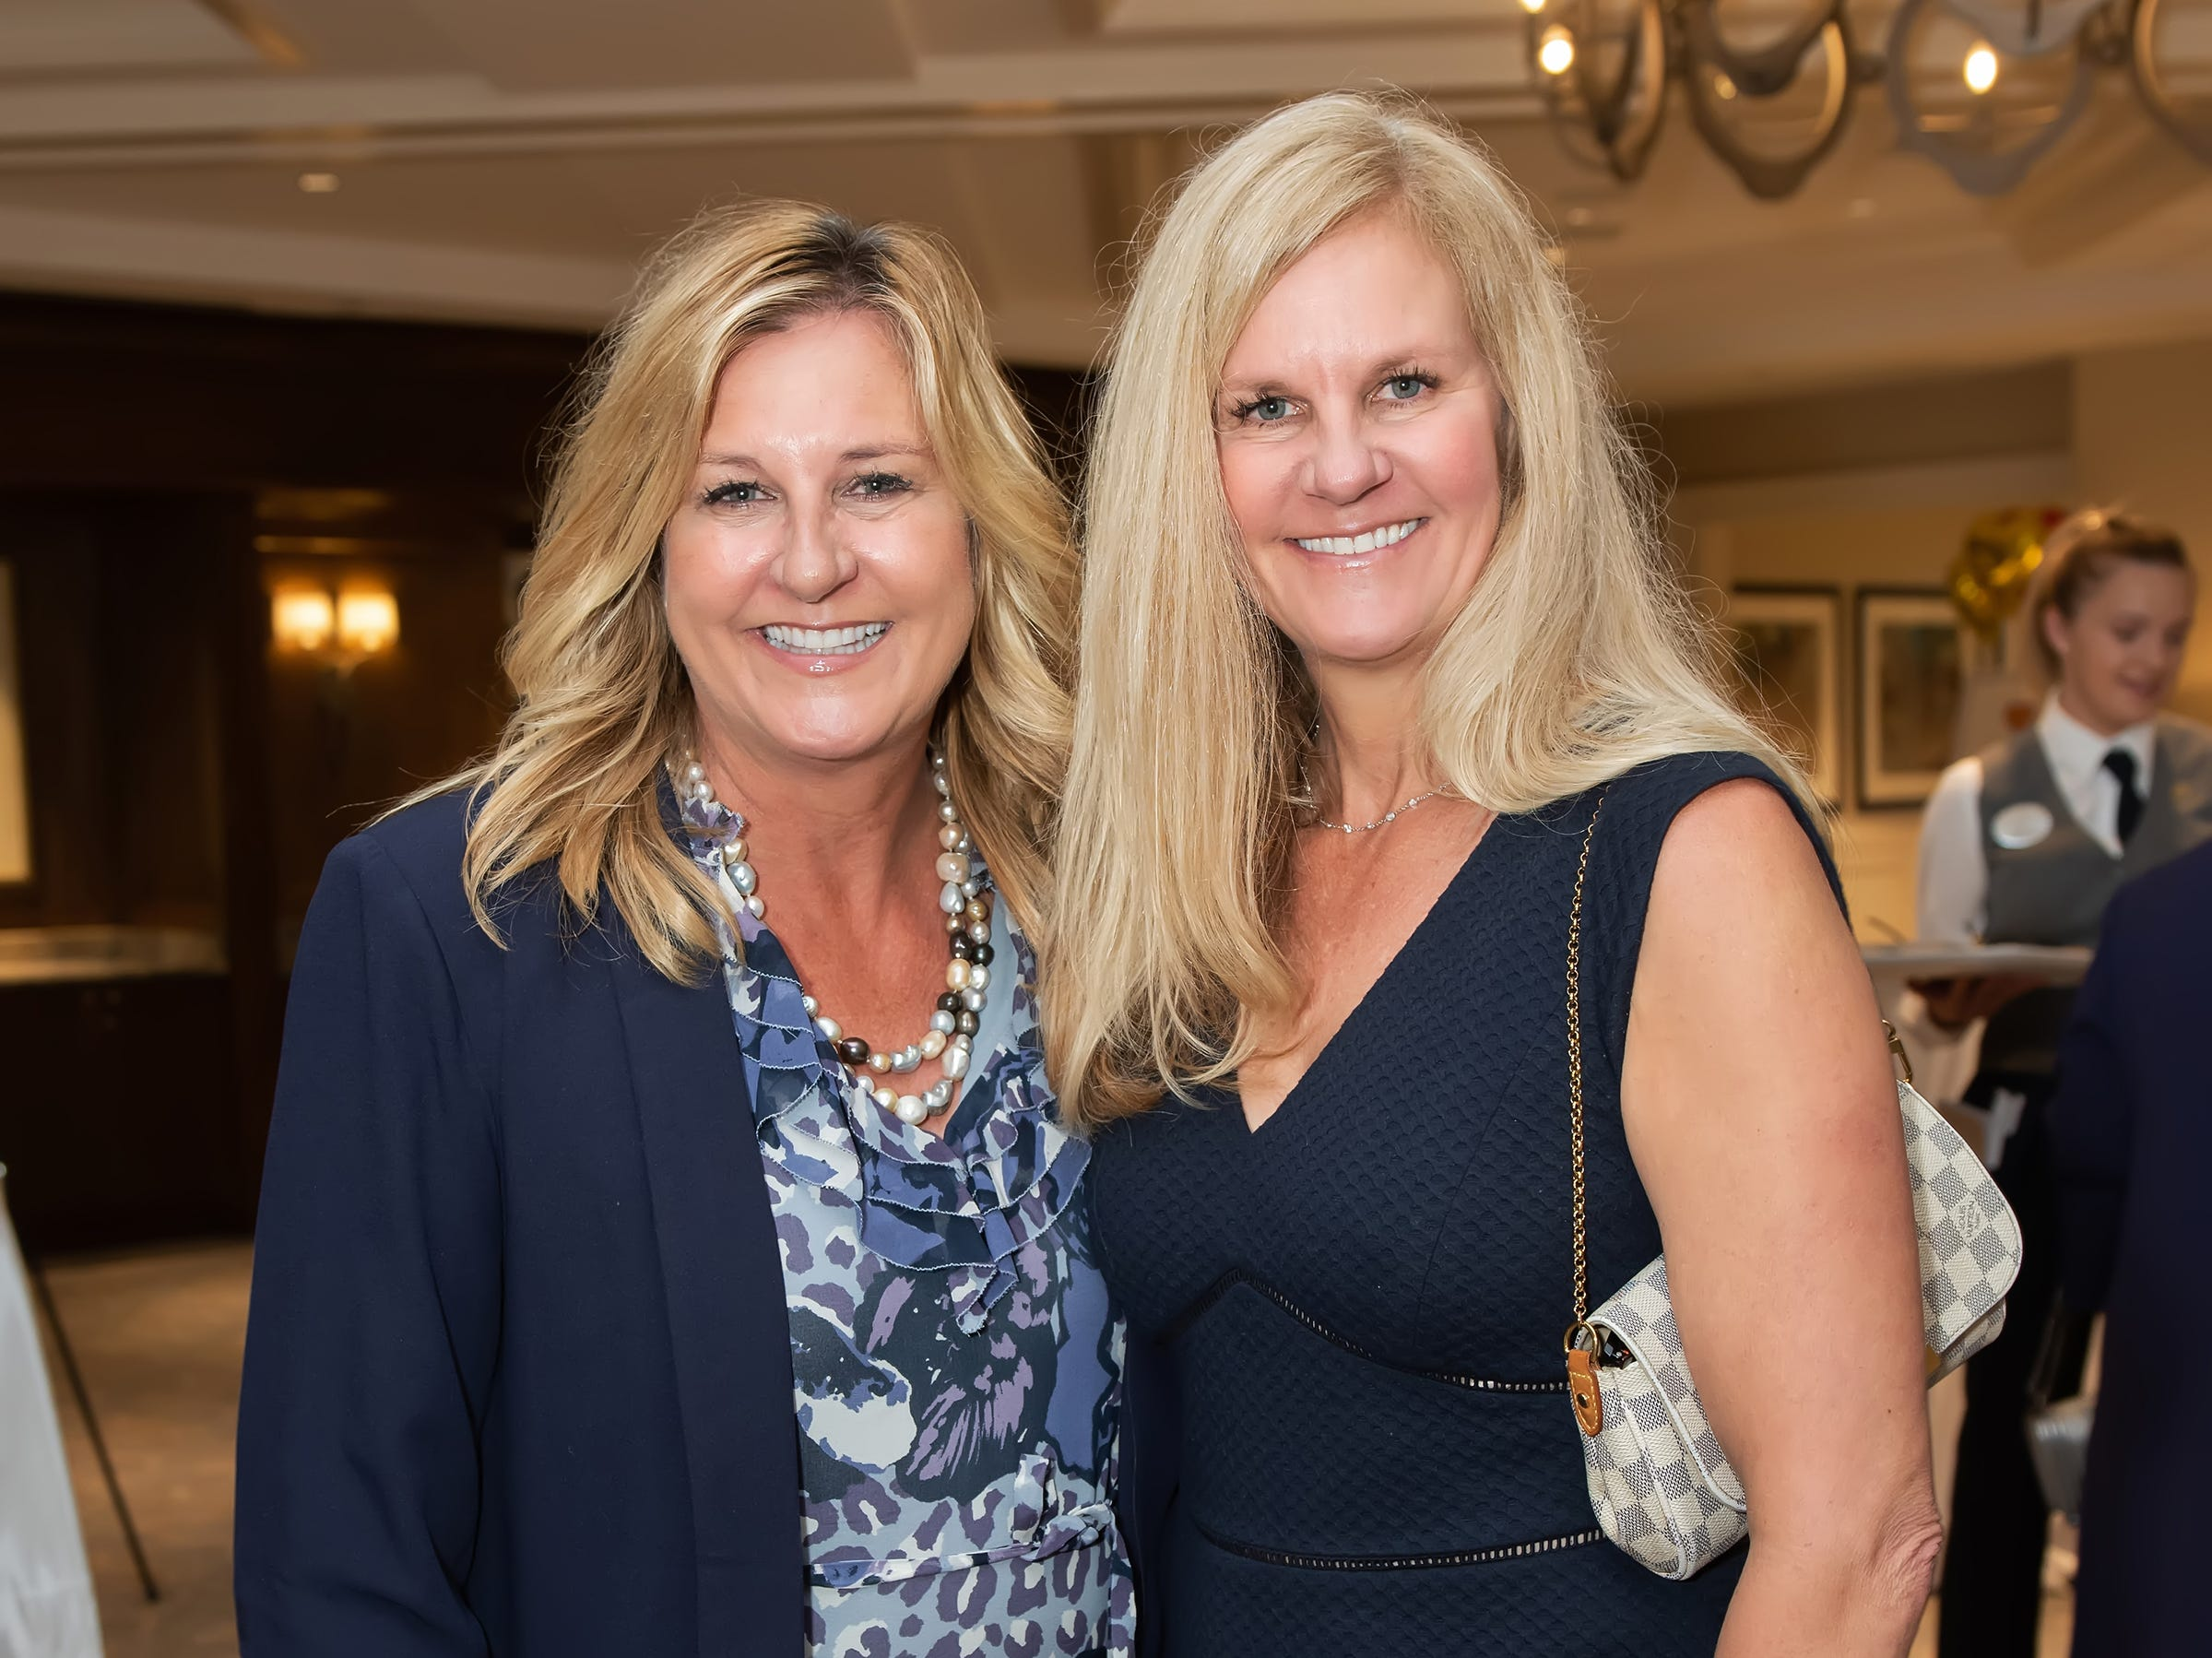 Kelly Kennerly, left, and Maureen Johnston at the Golden Heart Luncheon in Palm Beach Gardens.